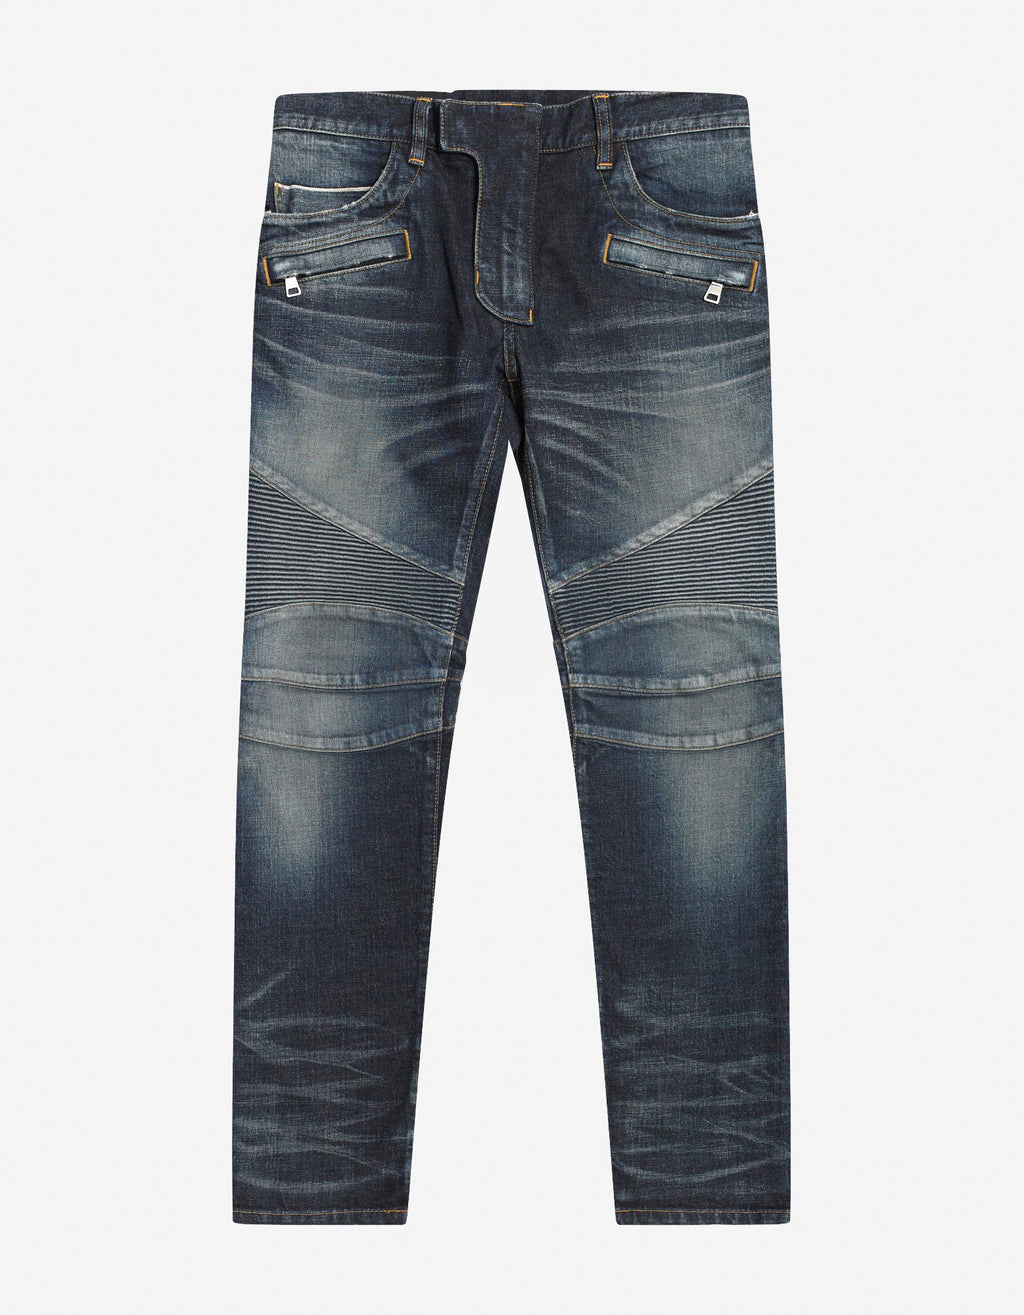 Wash Blue Medallion Biker Jeans